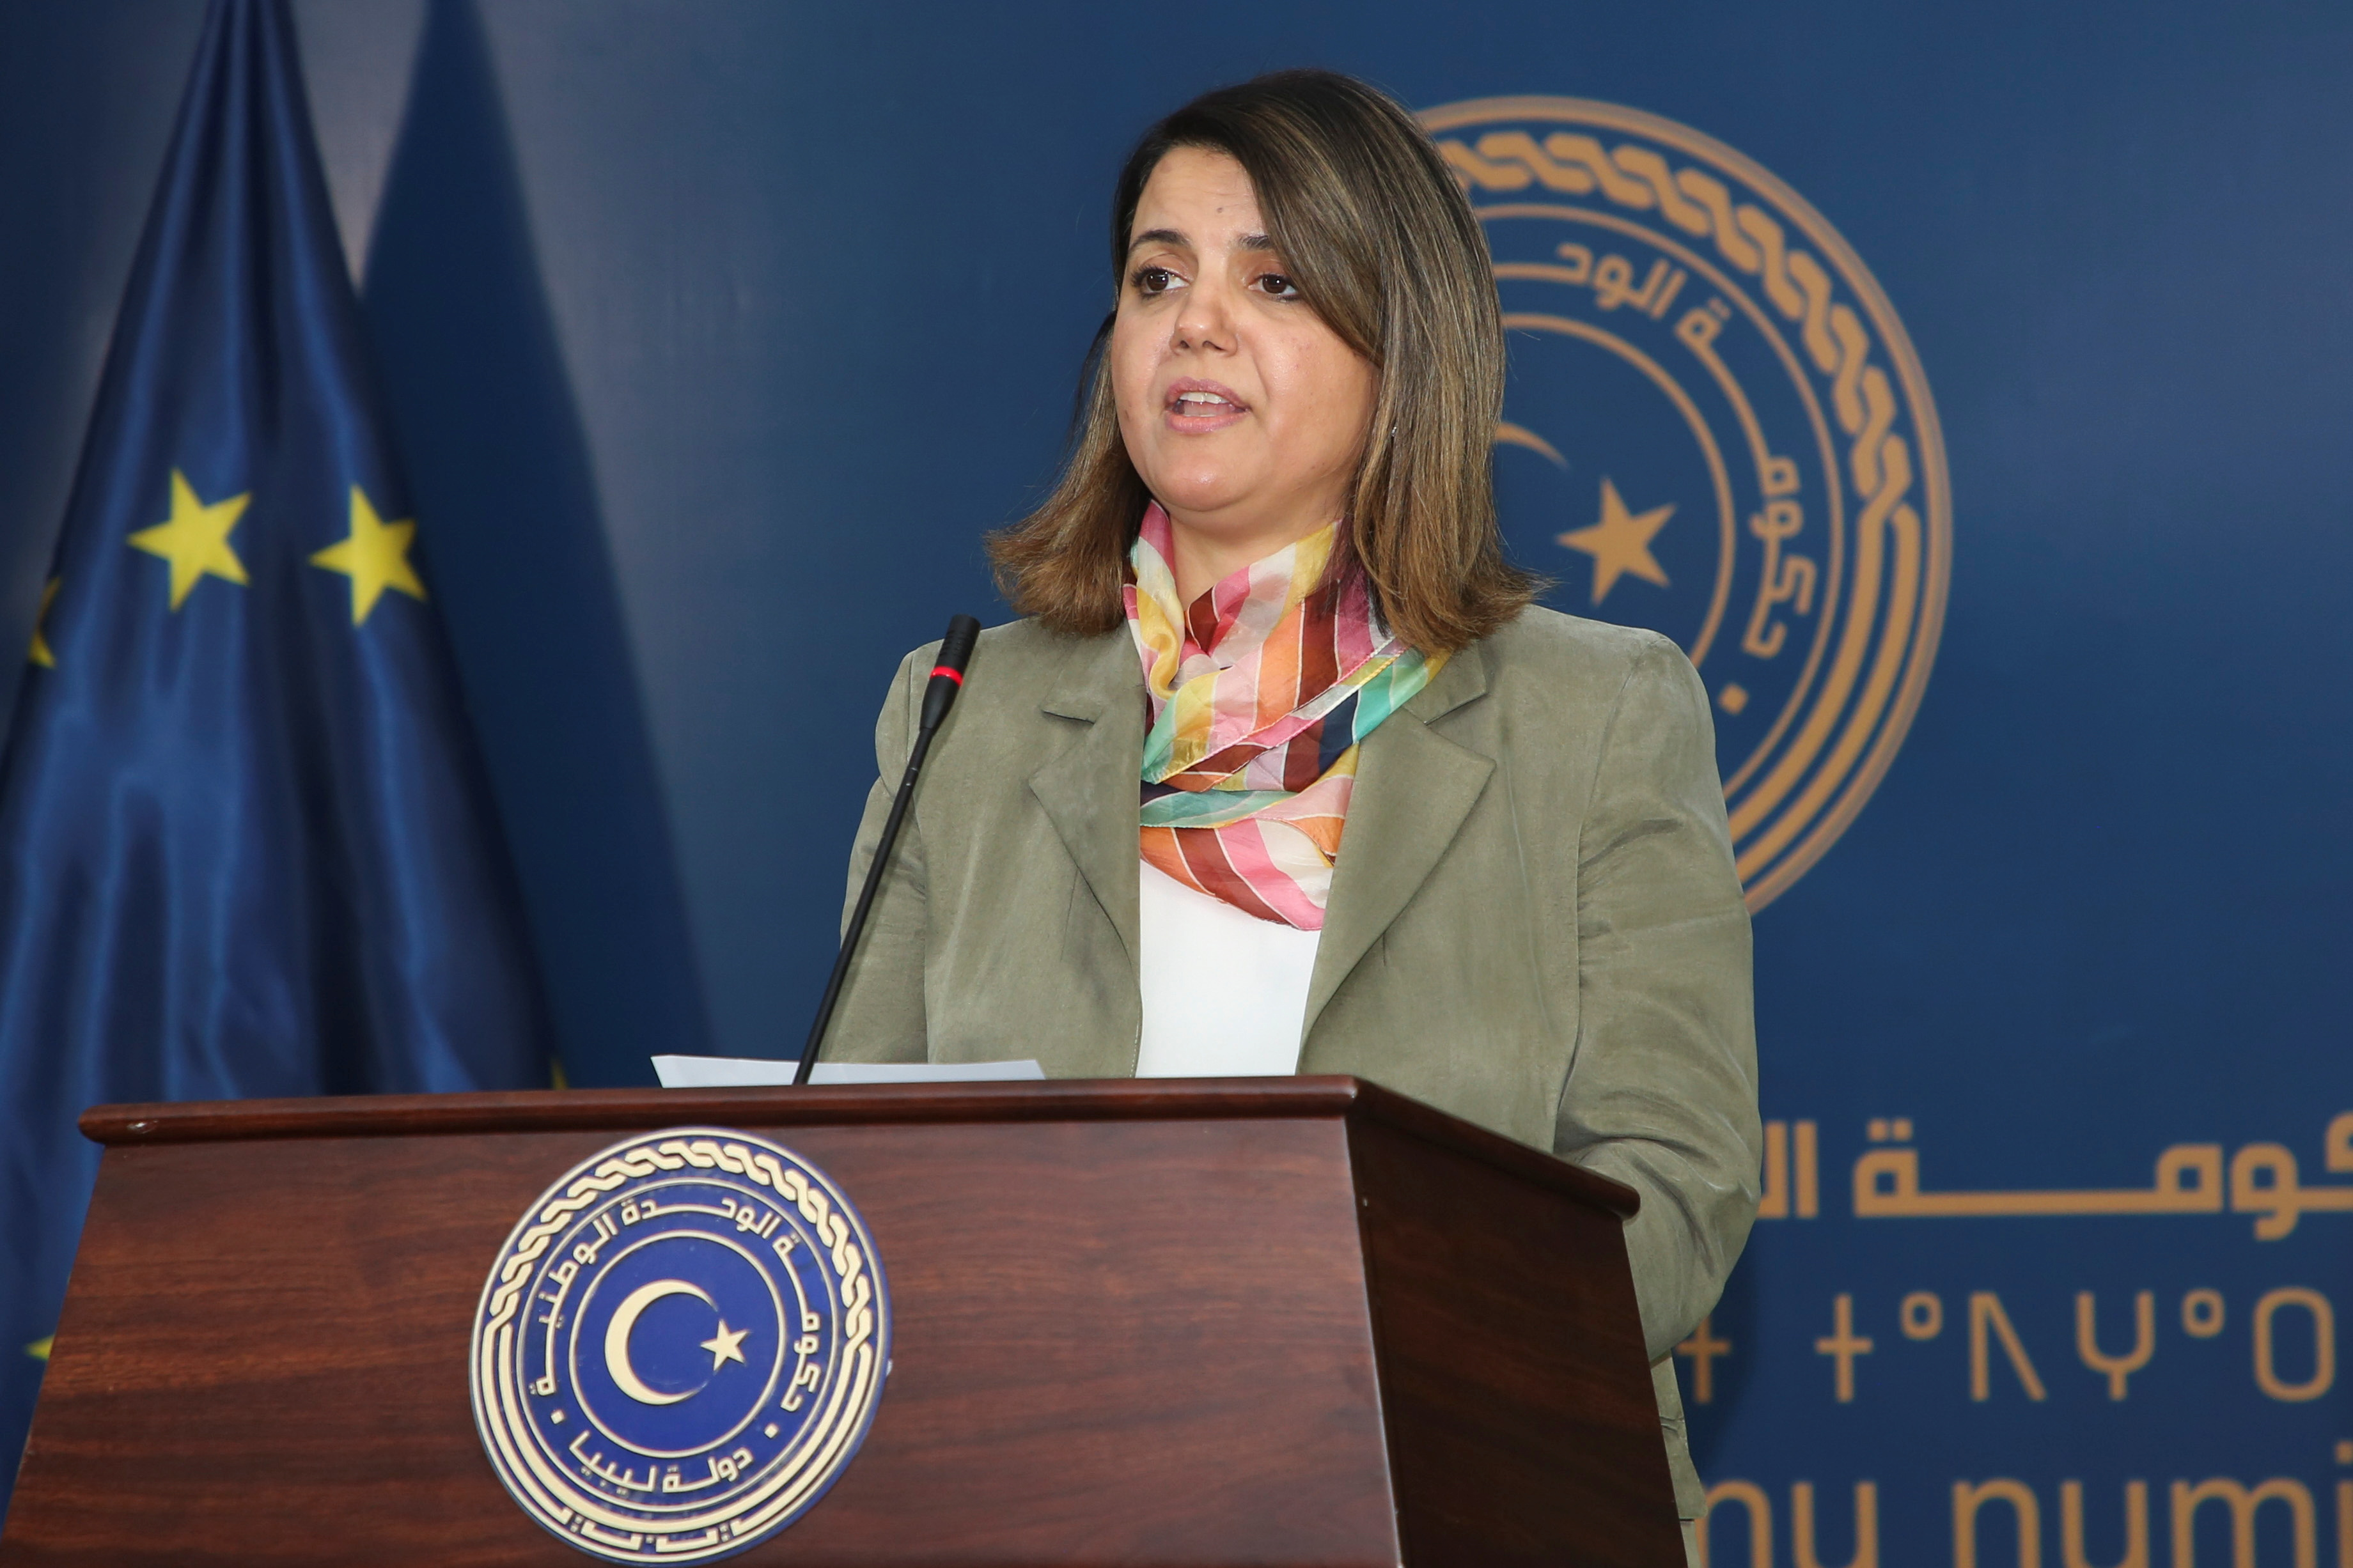 Libyan Foreign Minister Najla el-Mangoush speaks as she and European Council President Charles Michel deliver a joint statement, in Tripoli, Libya, April 4, 2021. REUTERS/Hazem Ahmed